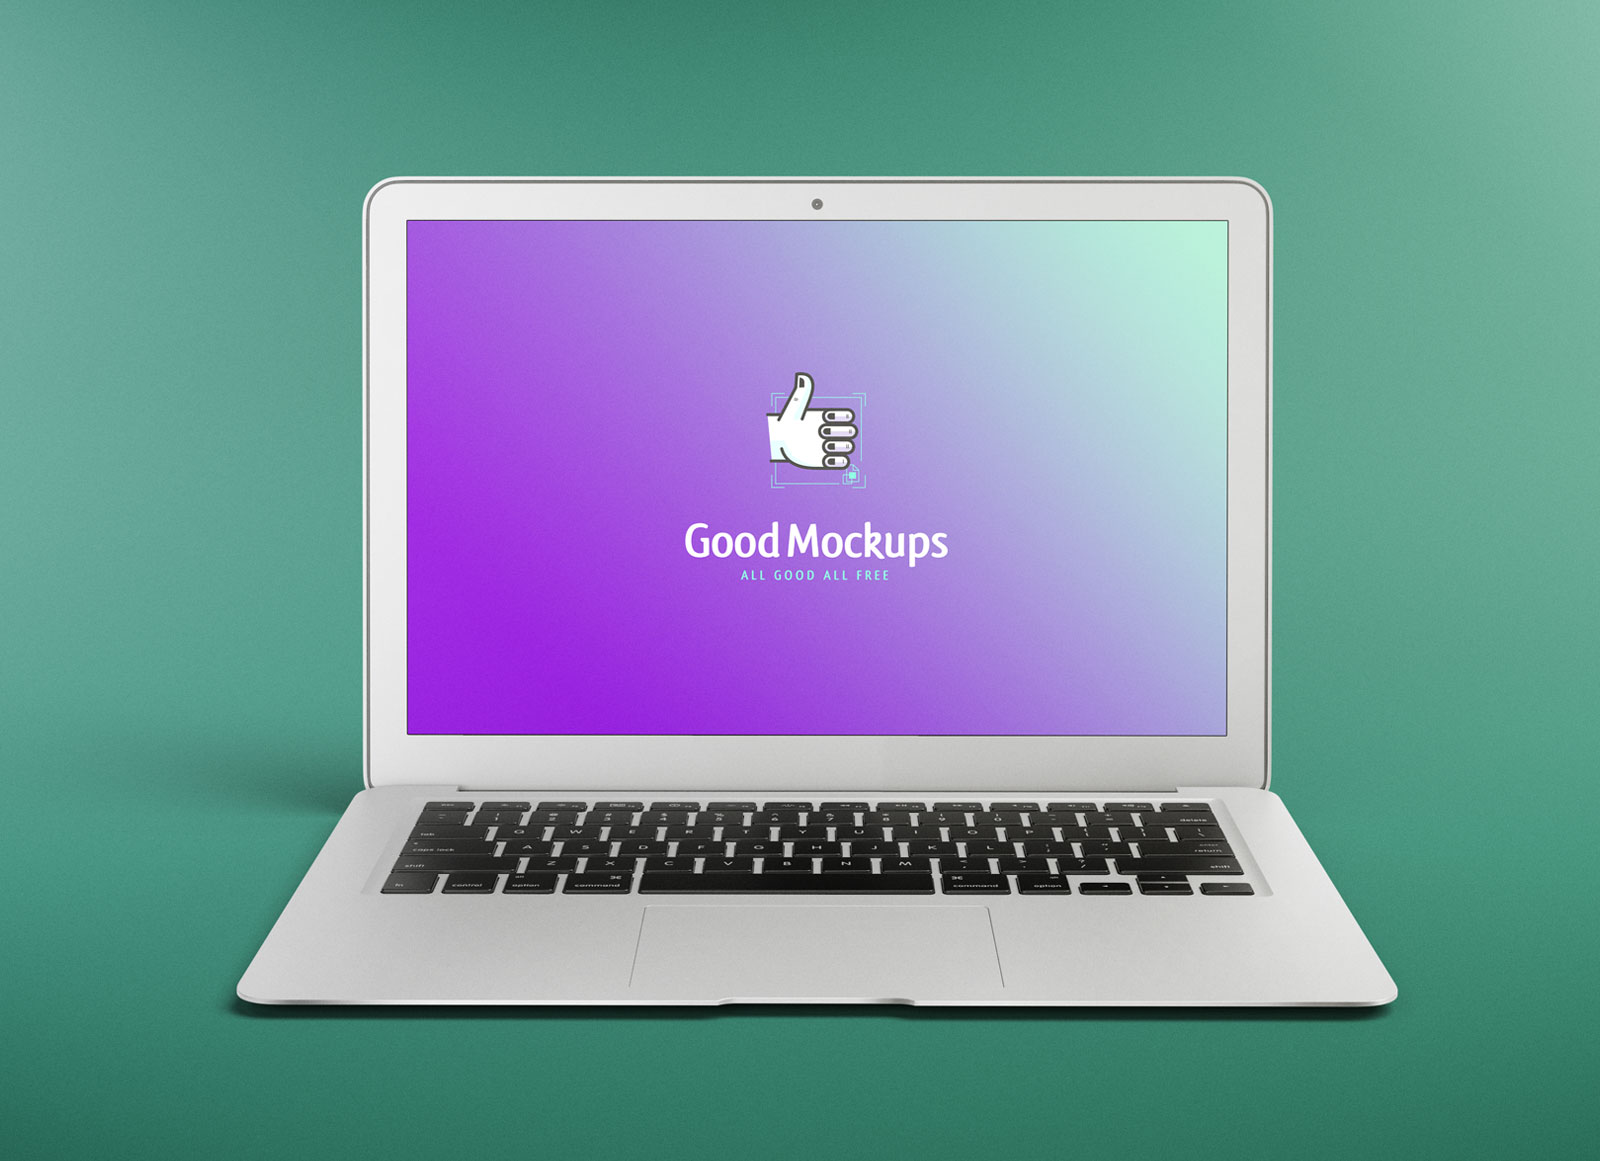 Free-MacBook-Air-Mockup-PSD-File